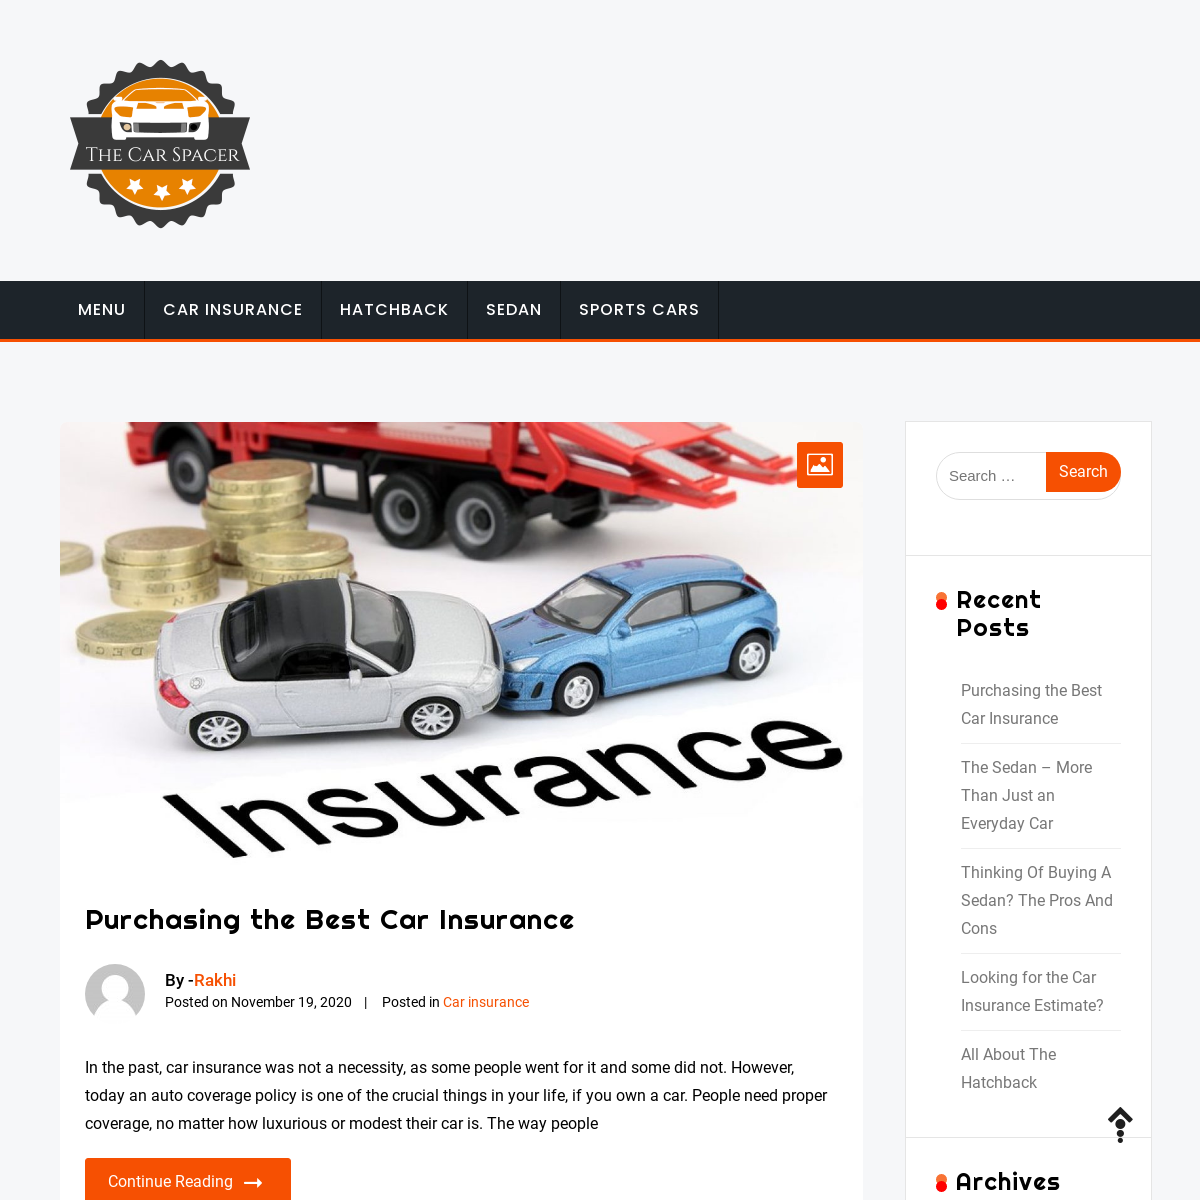 The Car Spacer - Car insurance policies